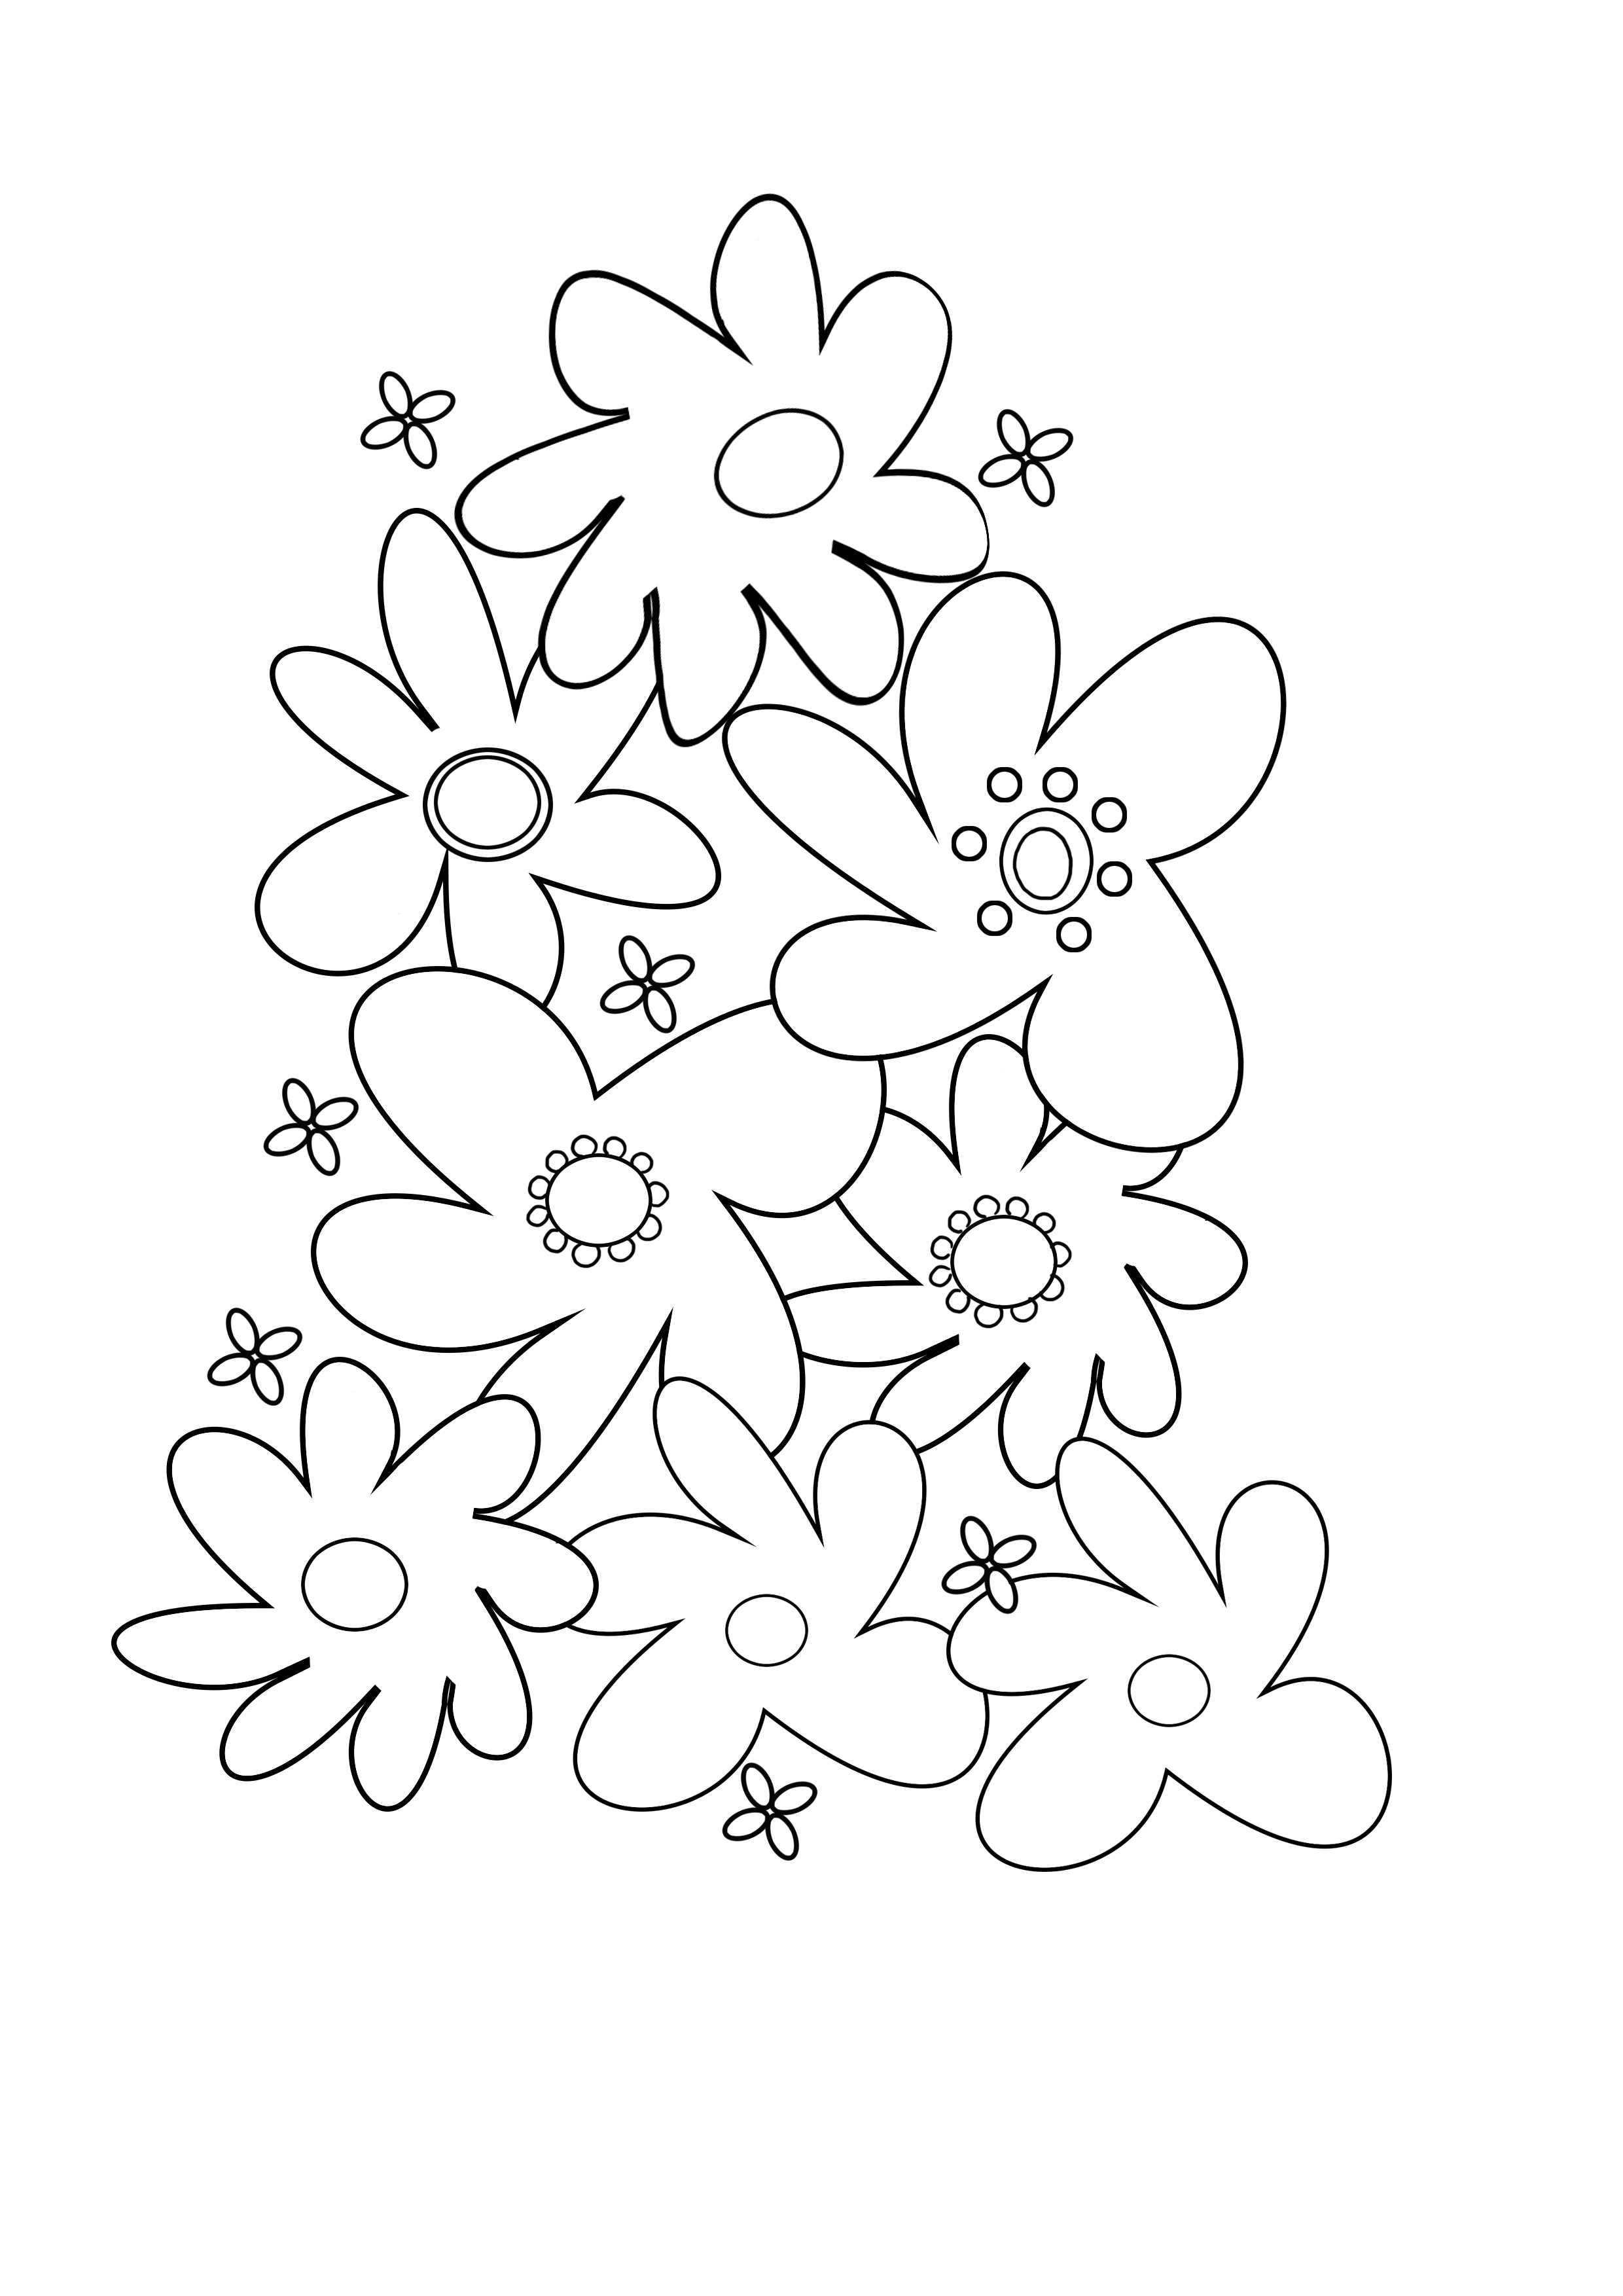 colouring flowers free printable flower coloring pages for kids best colouring flowers 1 2